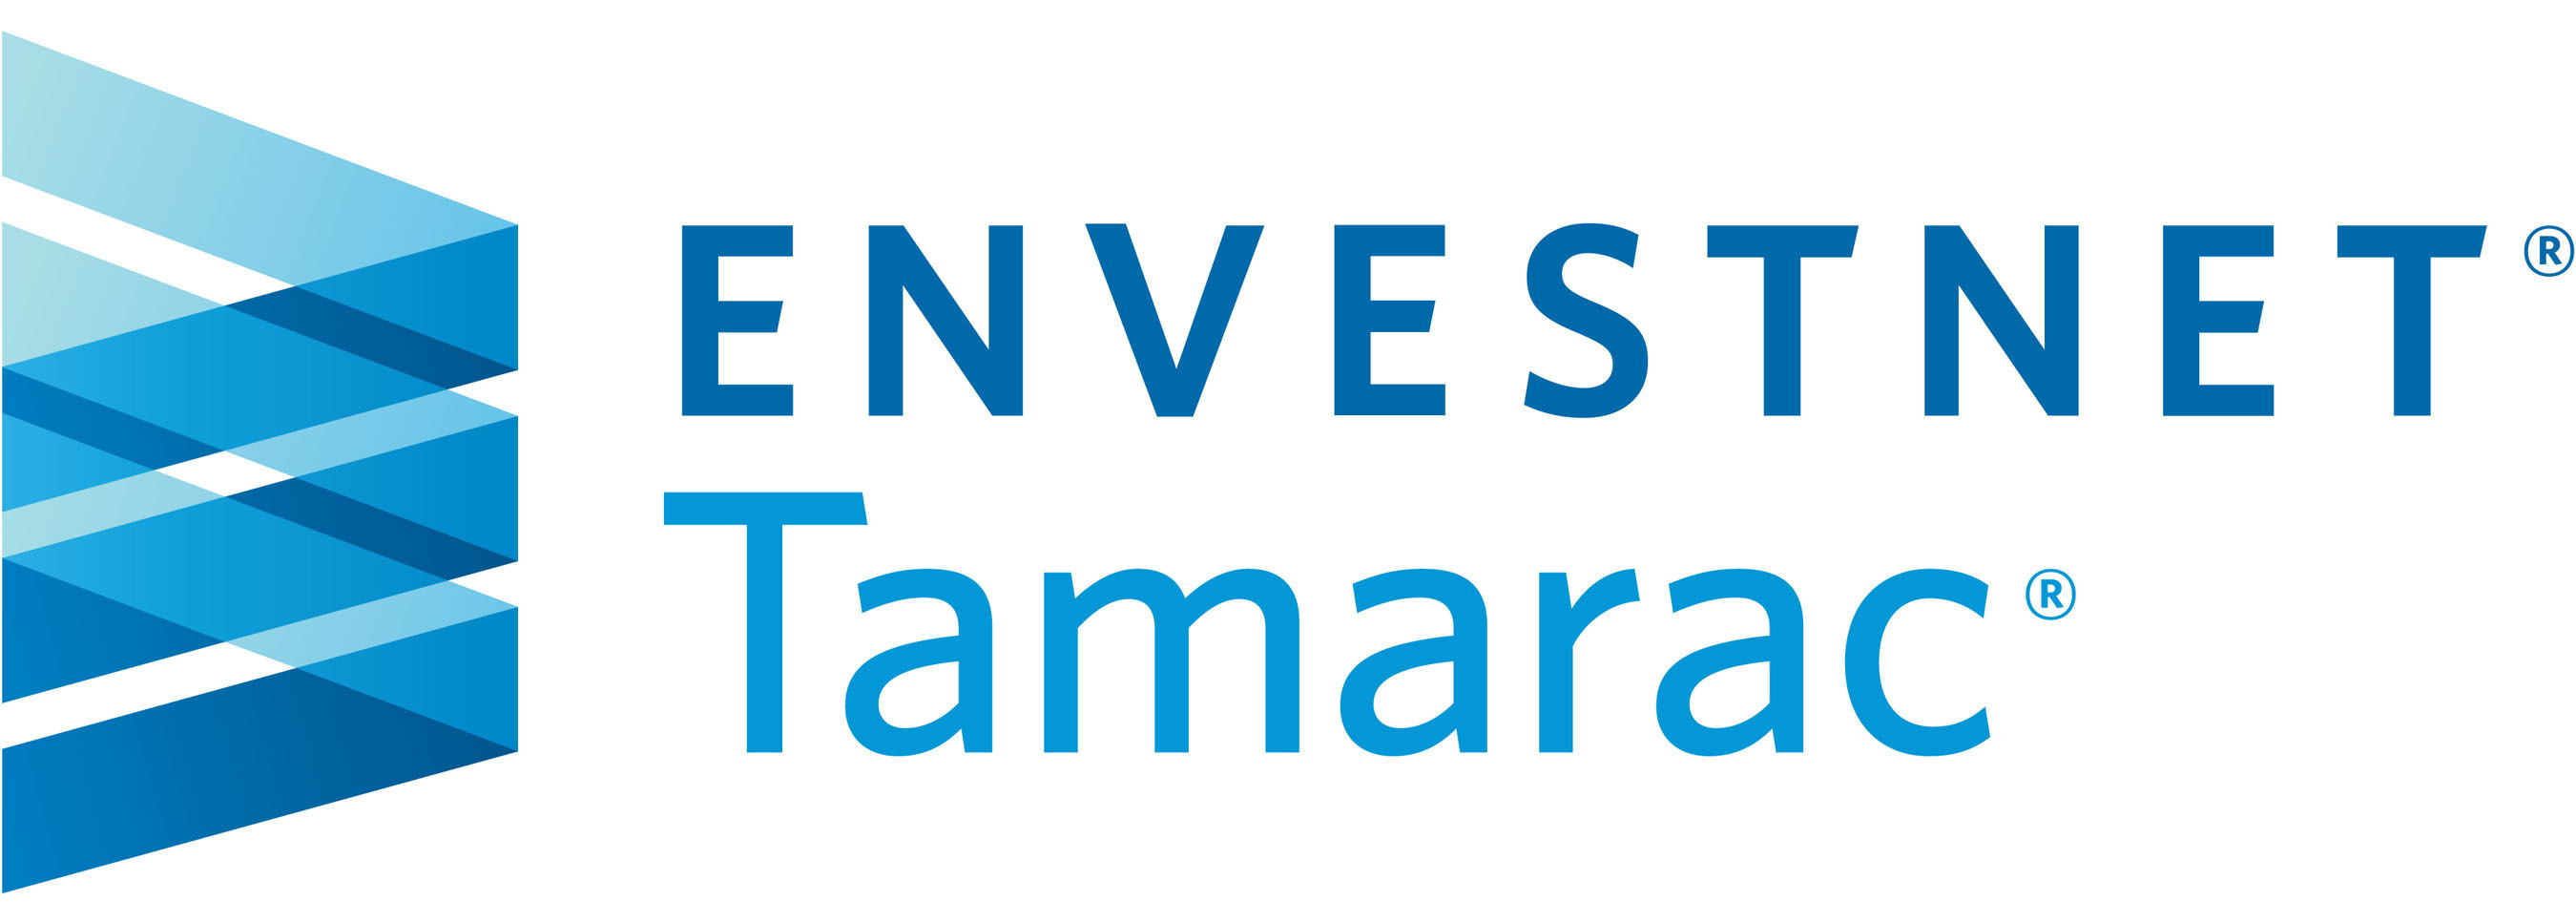 Envestnet Tamarac's web-based platform for independent RIAs, Advisor Xi, deeply unifies portfolio management, modeling, rebalancing, trading, billing and reporting with a client portal and enterprise-level client relationship management system. For more information on Tamarac Advisor Xi, please visit www.tamaracinc.com.